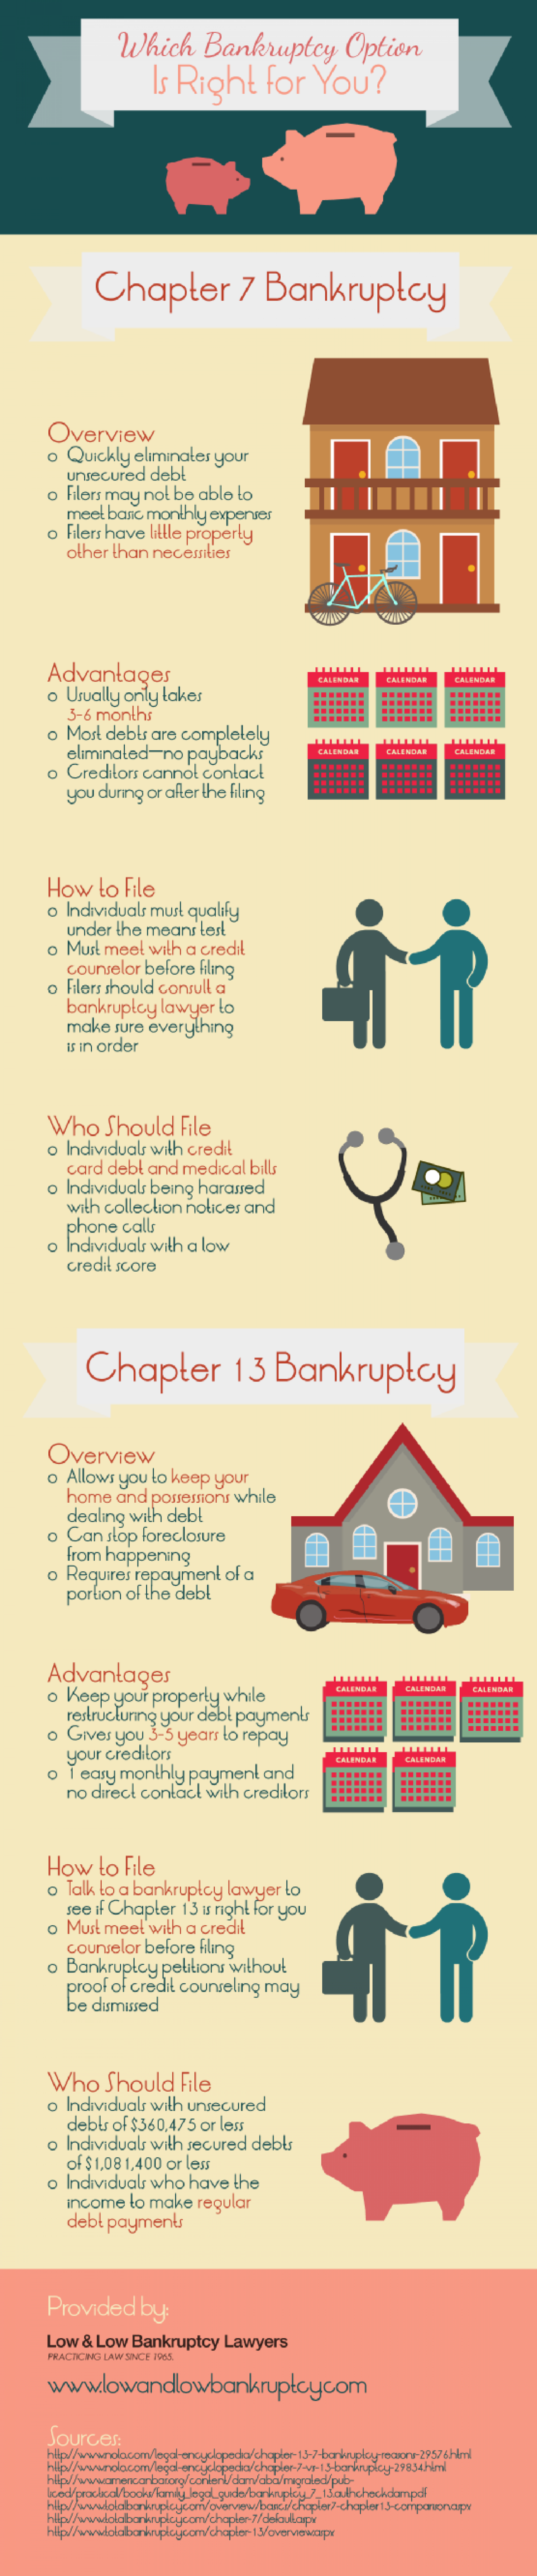 Which Bankruptcy Option Is Right for You? Infographic